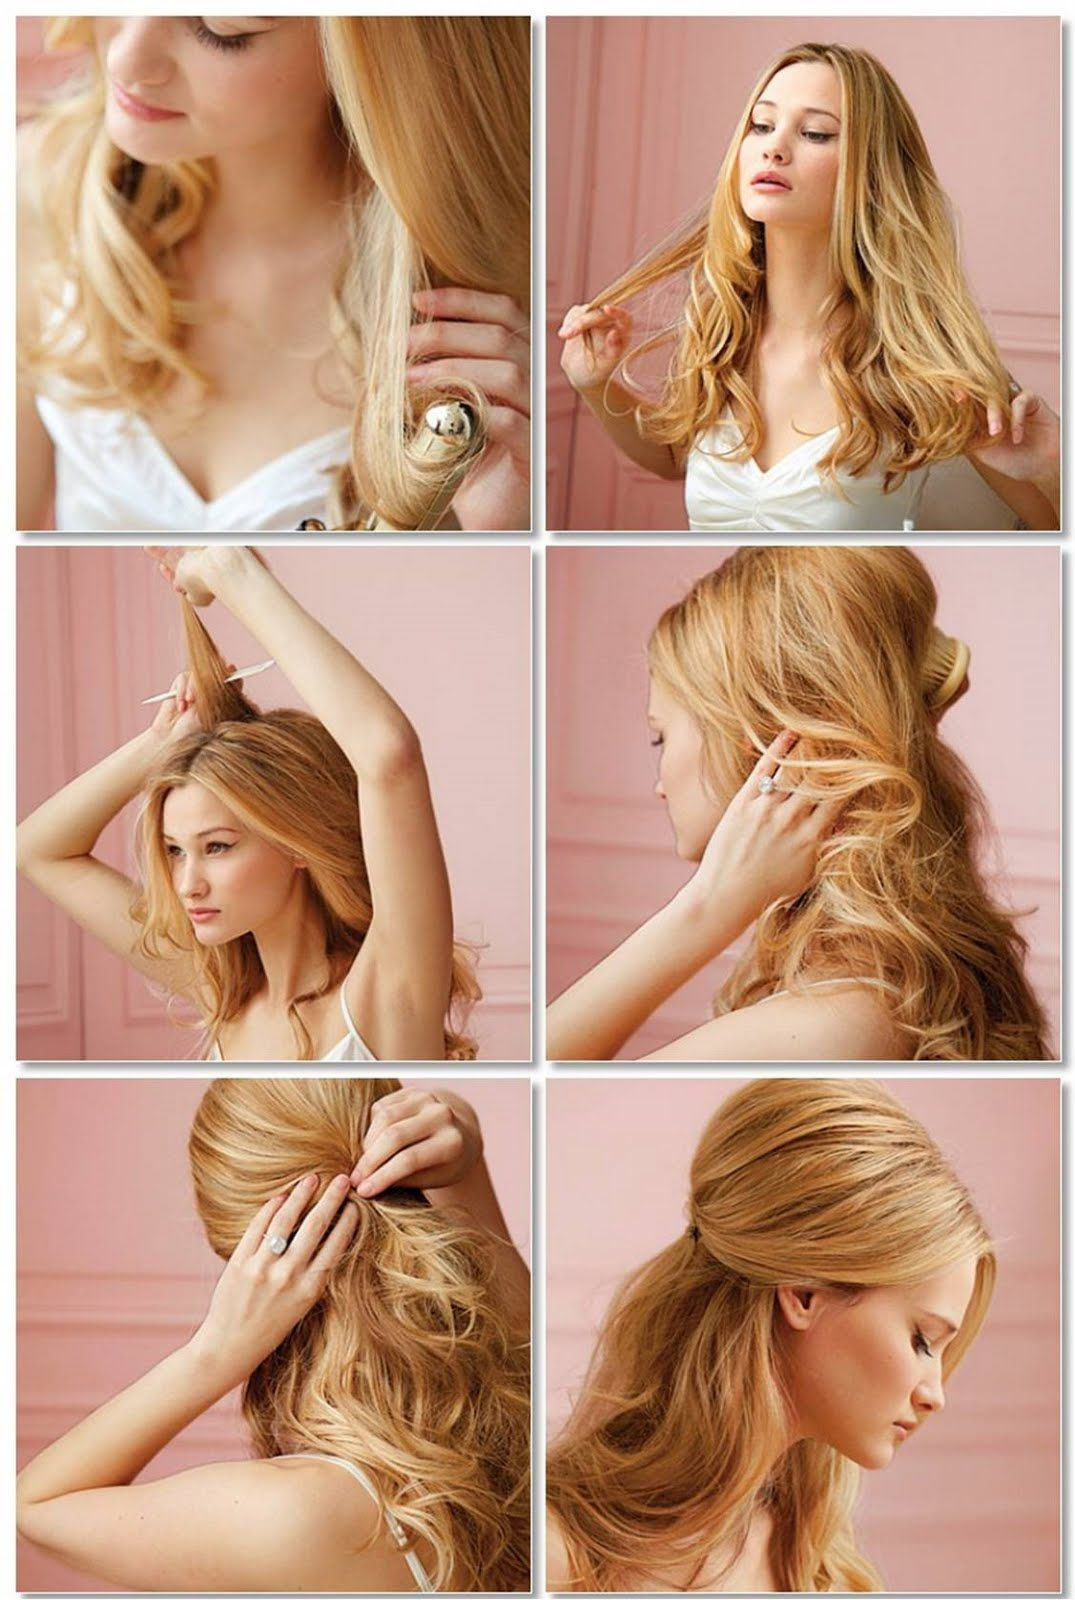 17 Best images about Frisuren on Pinterest  How to braid, Nice